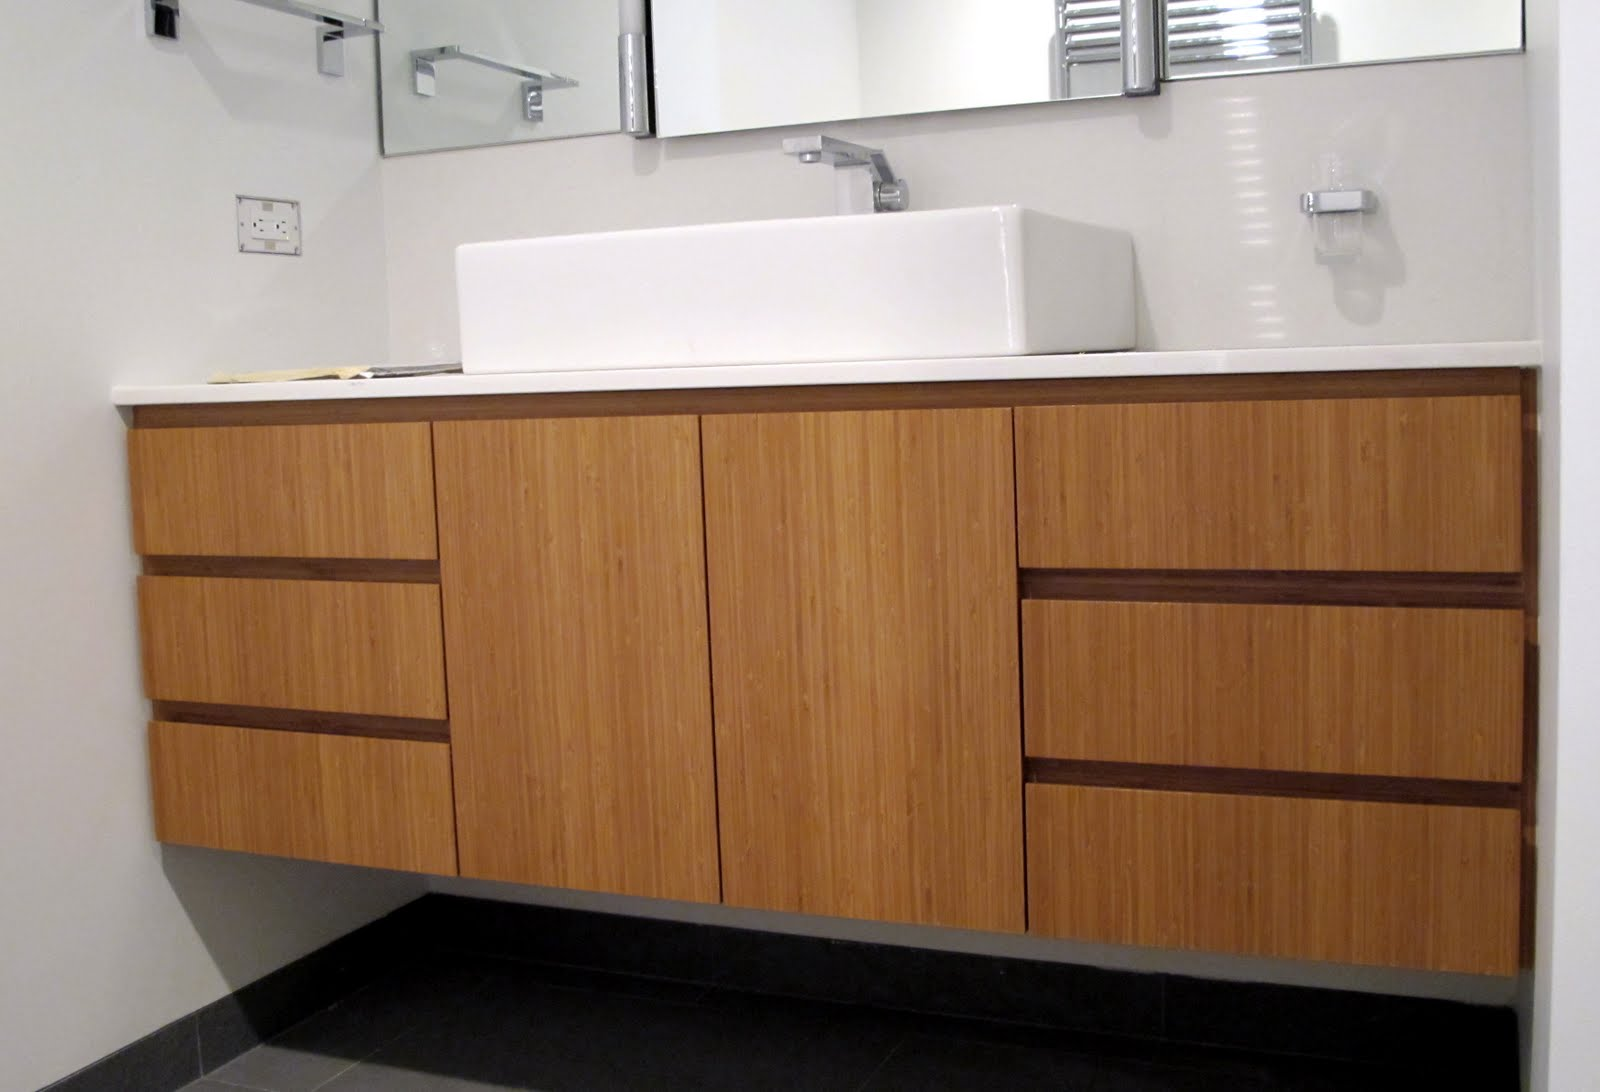 1000+ images about Cabinets - Bamboo Bathroom Vanities on ...